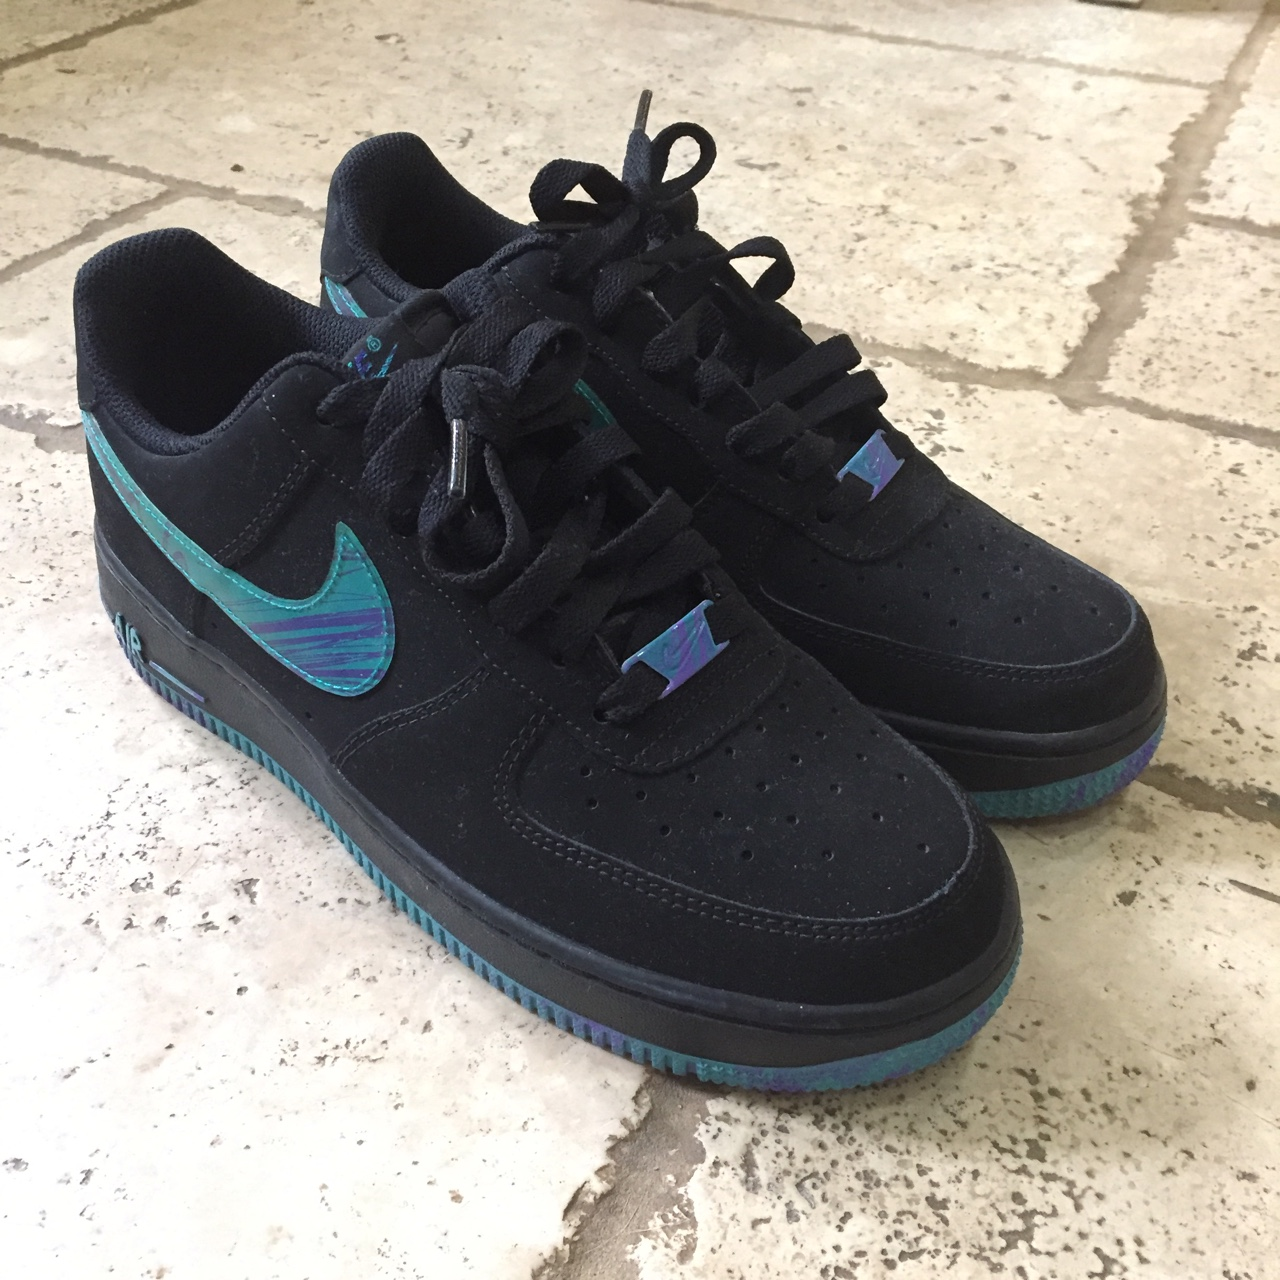 Black Force 1 Low Marble In Turbo Air Depop Green Nike cqRL5j34A